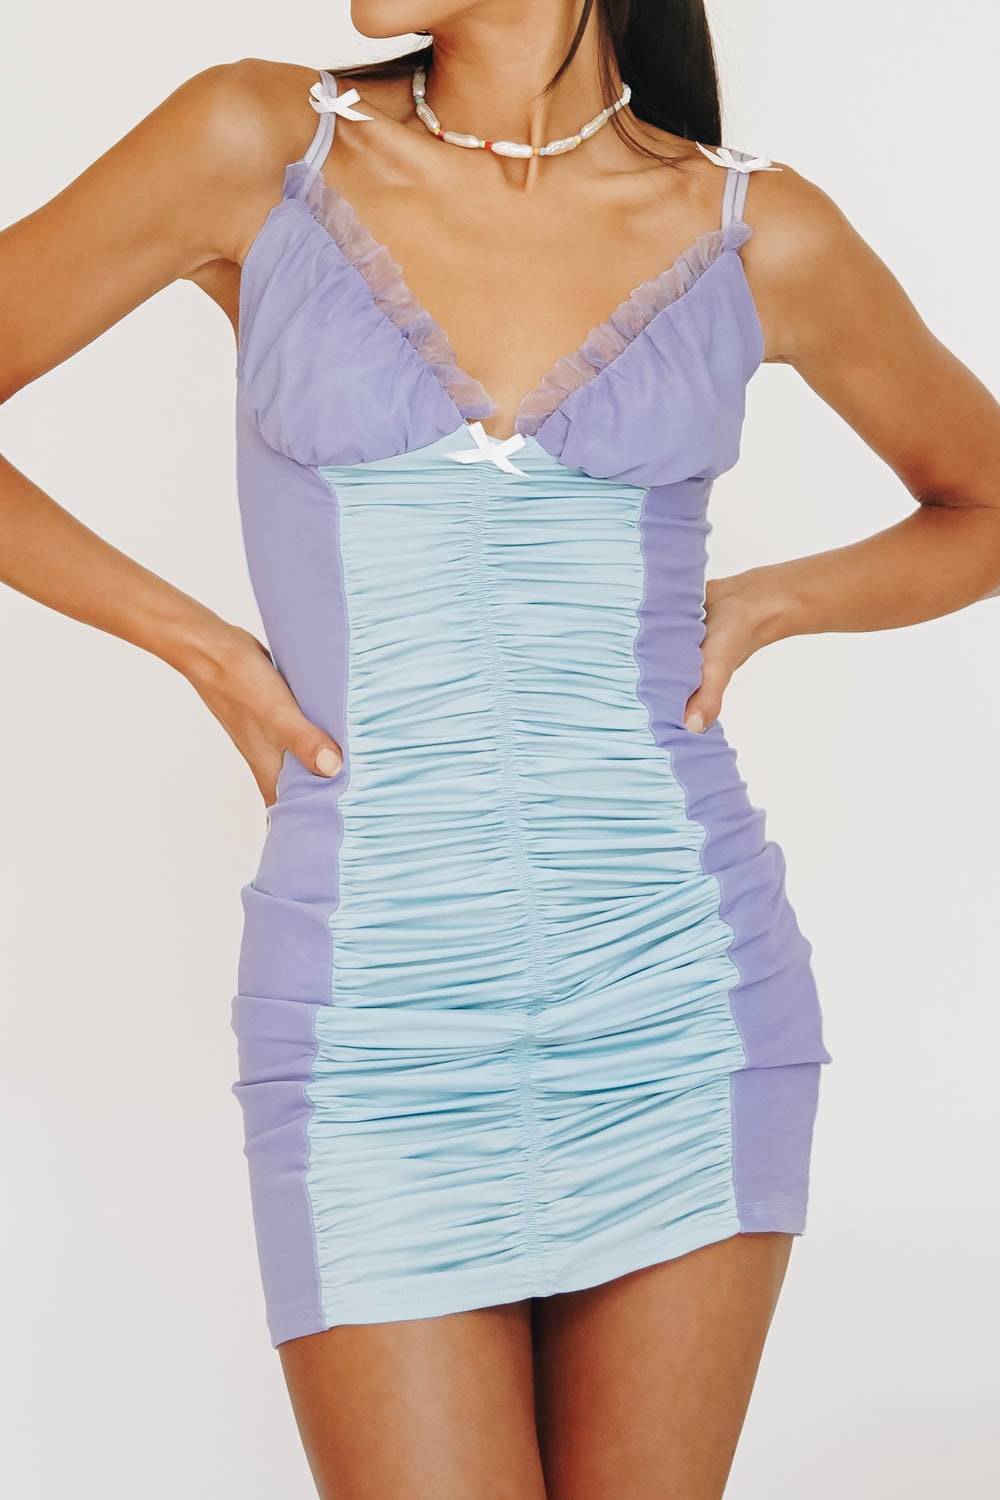 BABY Mesh Ruched Mini Dress // Sky